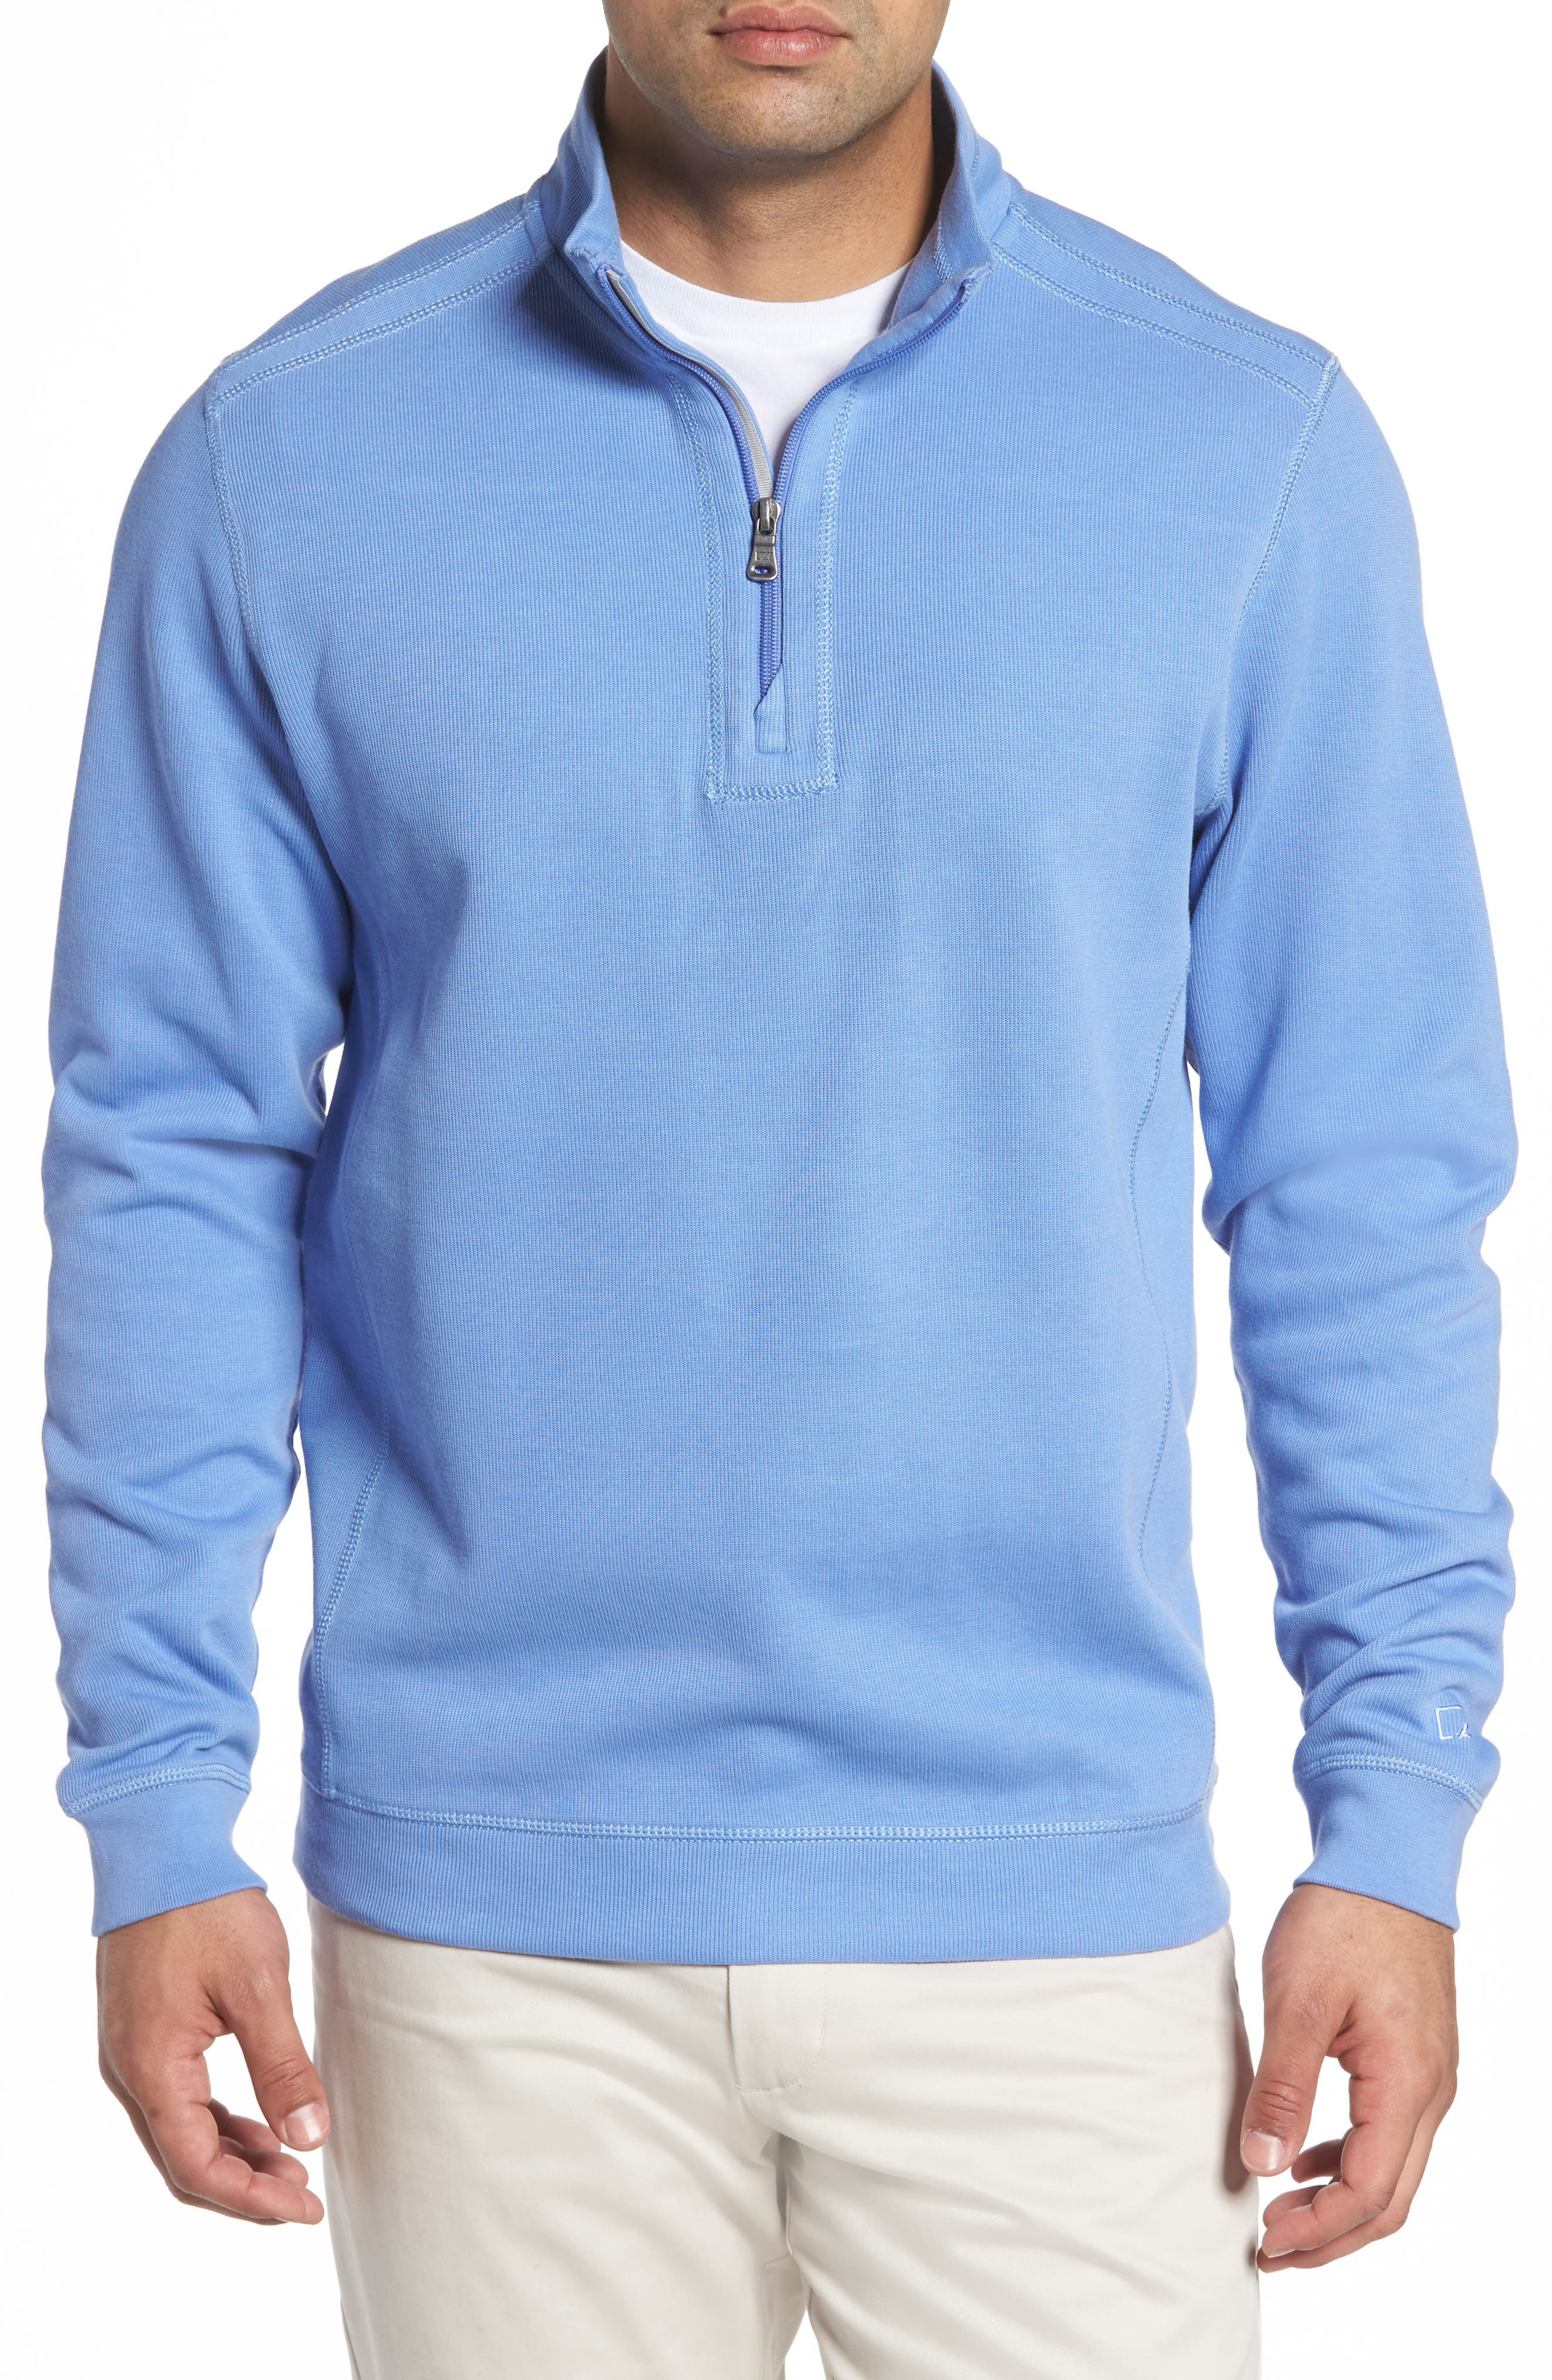 Cutter & Buck Bayview Quarter Zip Pullover (Big & Tall)